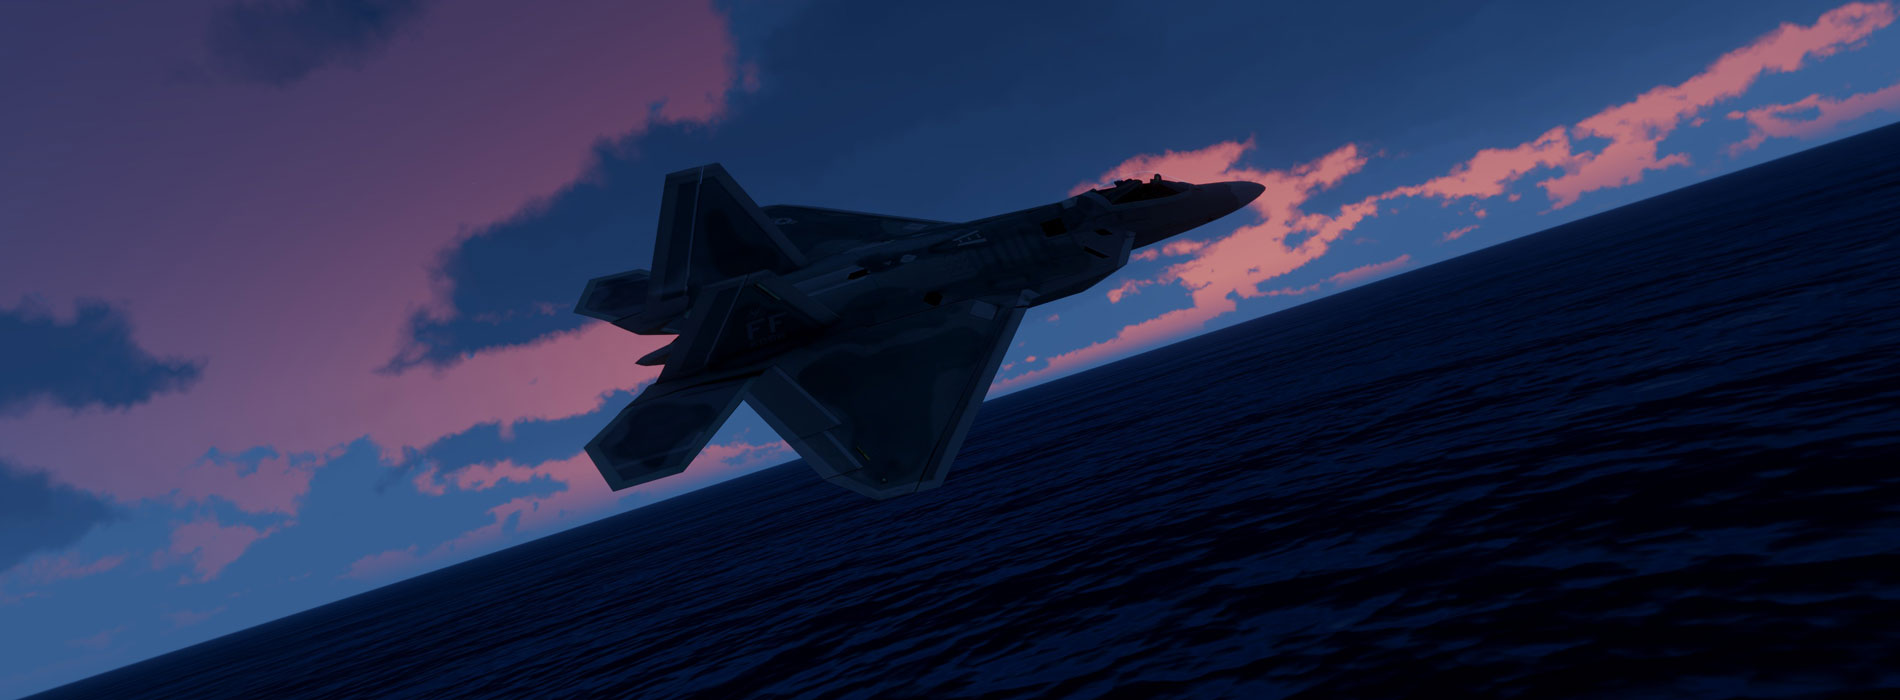 F22atNight1 hi res - Home